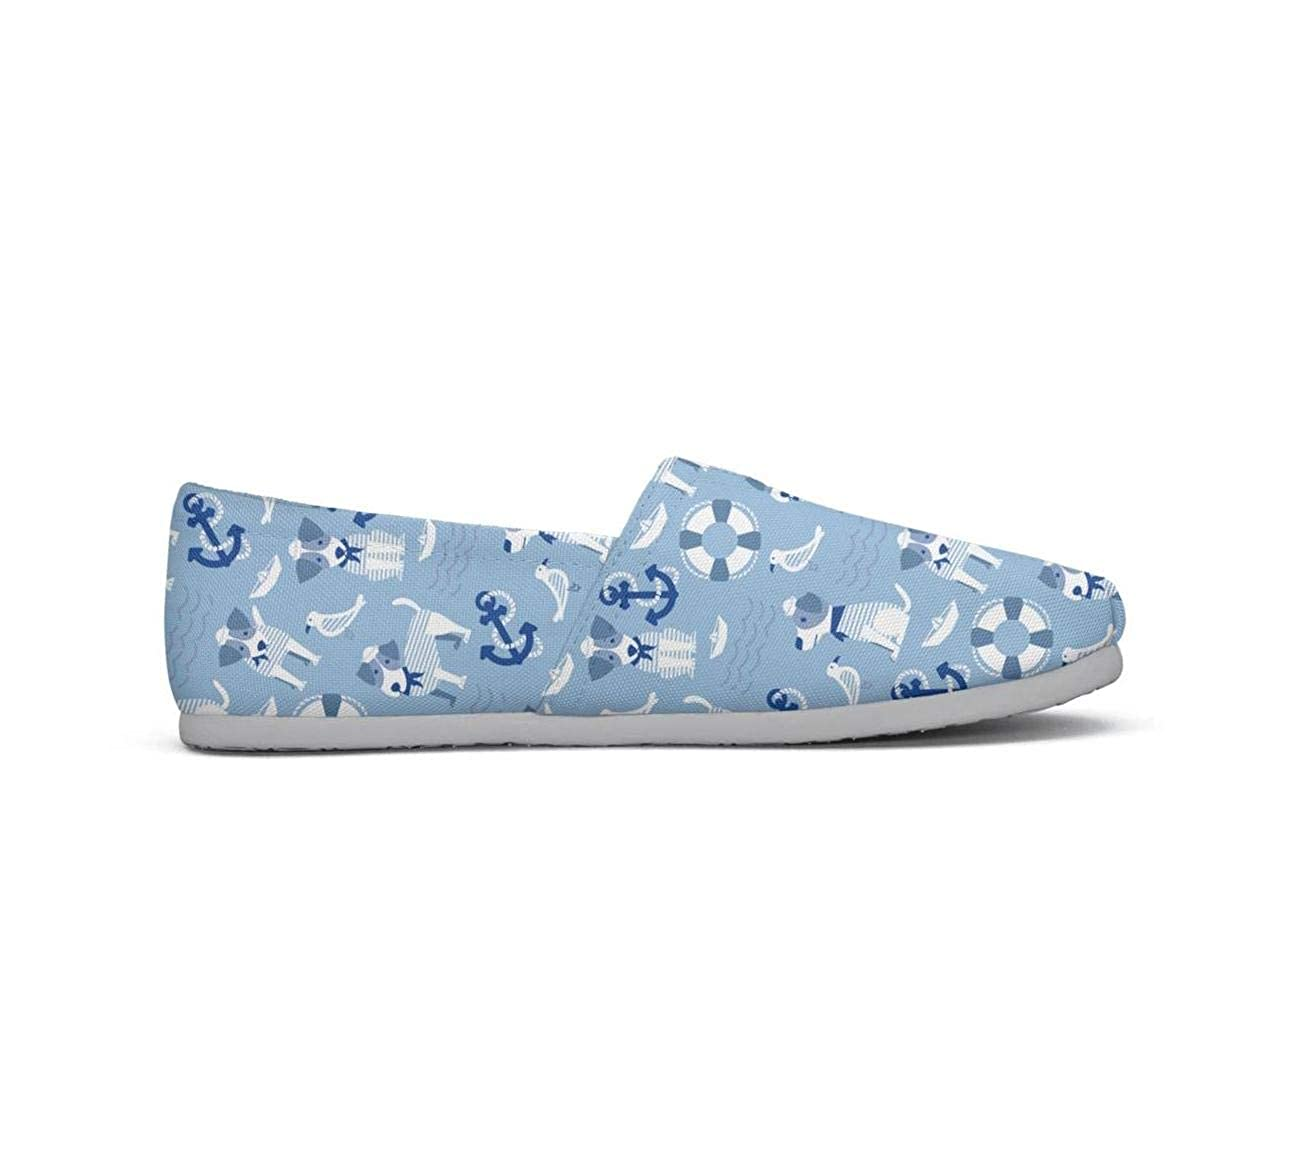 Pug puppies and pink pug paw Classics Womens Comfort Flat Slip on Shoes Ladies Espadrille Flats